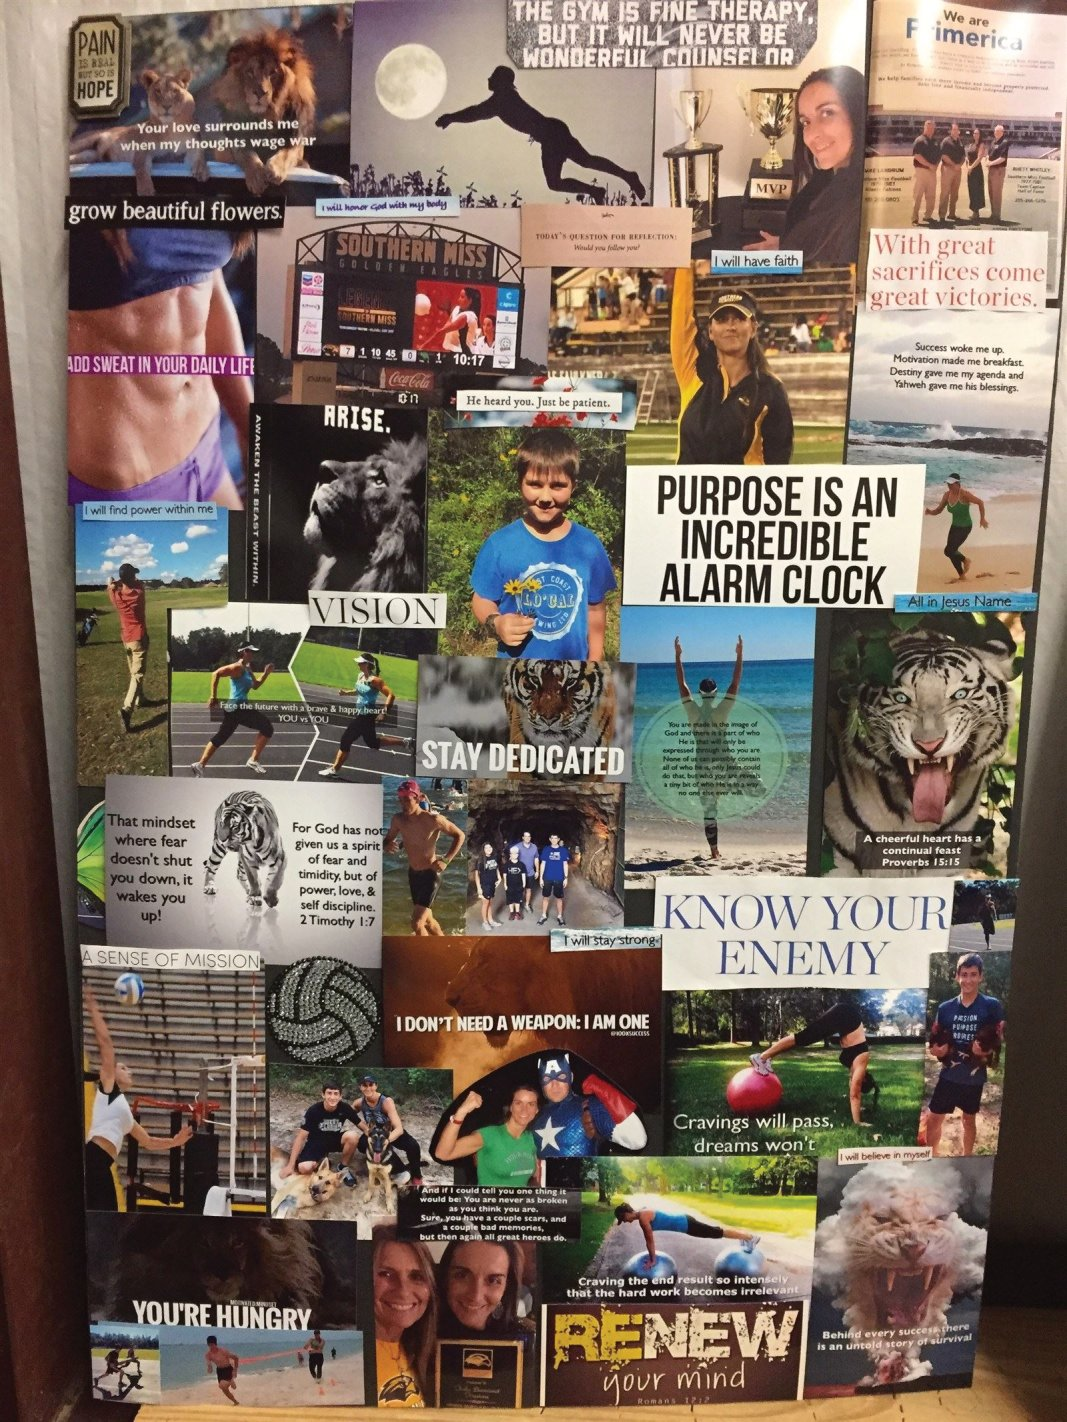 Dream Boards, Freak of Nature Fitness, White Tiger,Tosha Firestone, motivation, Jesus, Christian Athlete, Fit Life